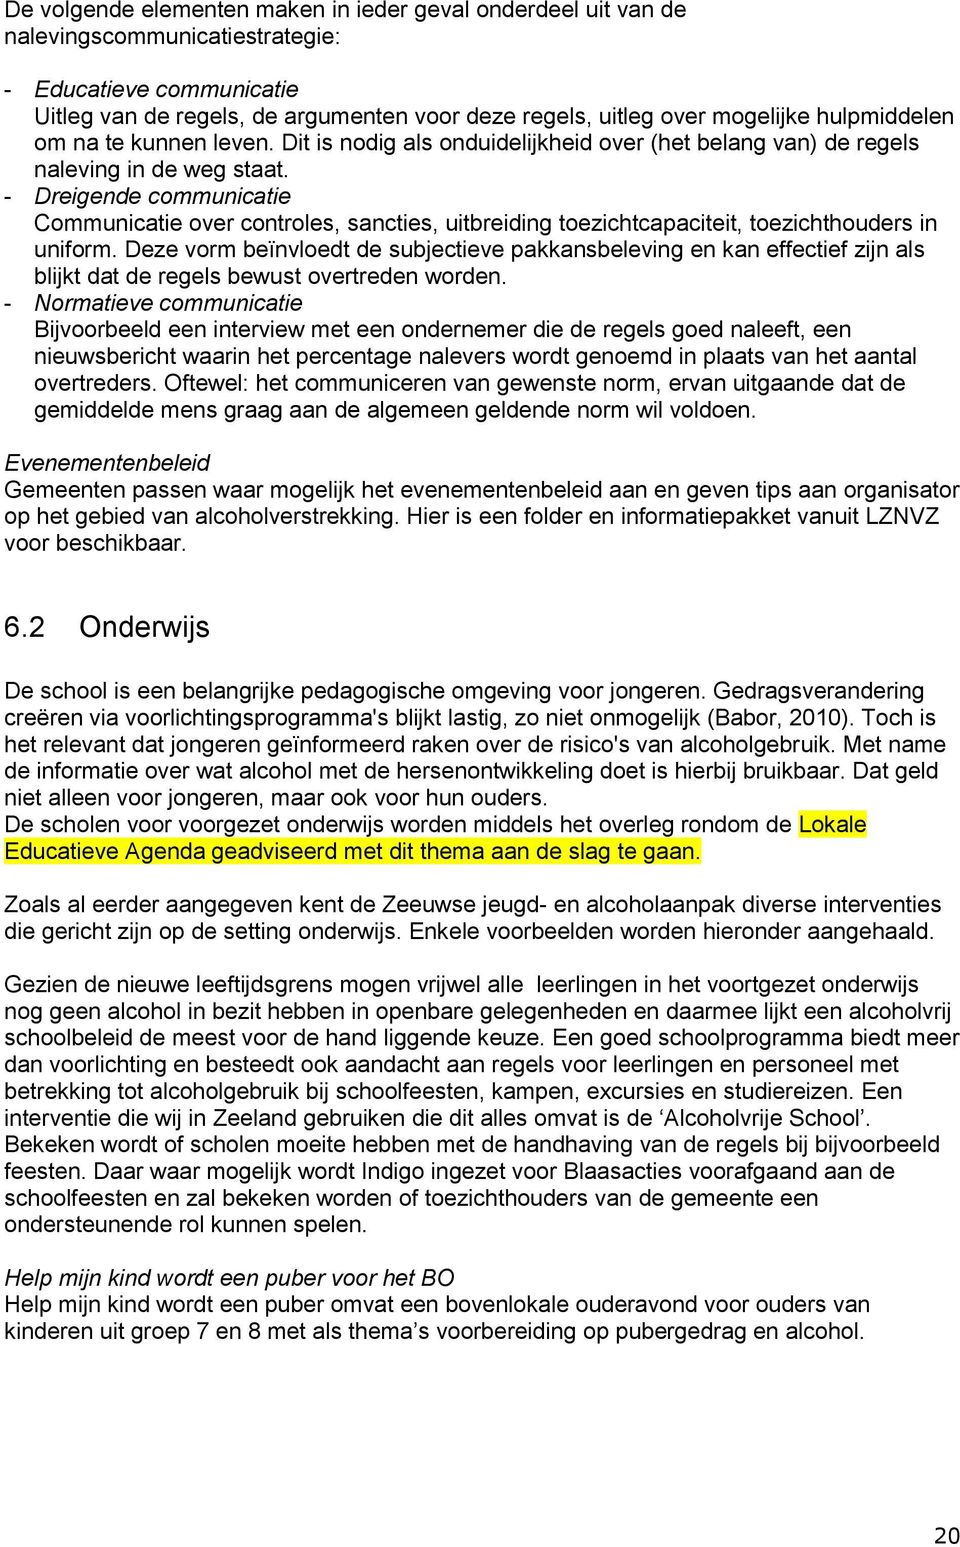 - Dreigende communicatie Communicatie over controles, sancties, uitbreiding toezichtcapaciteit, toezichthouders in uniform.